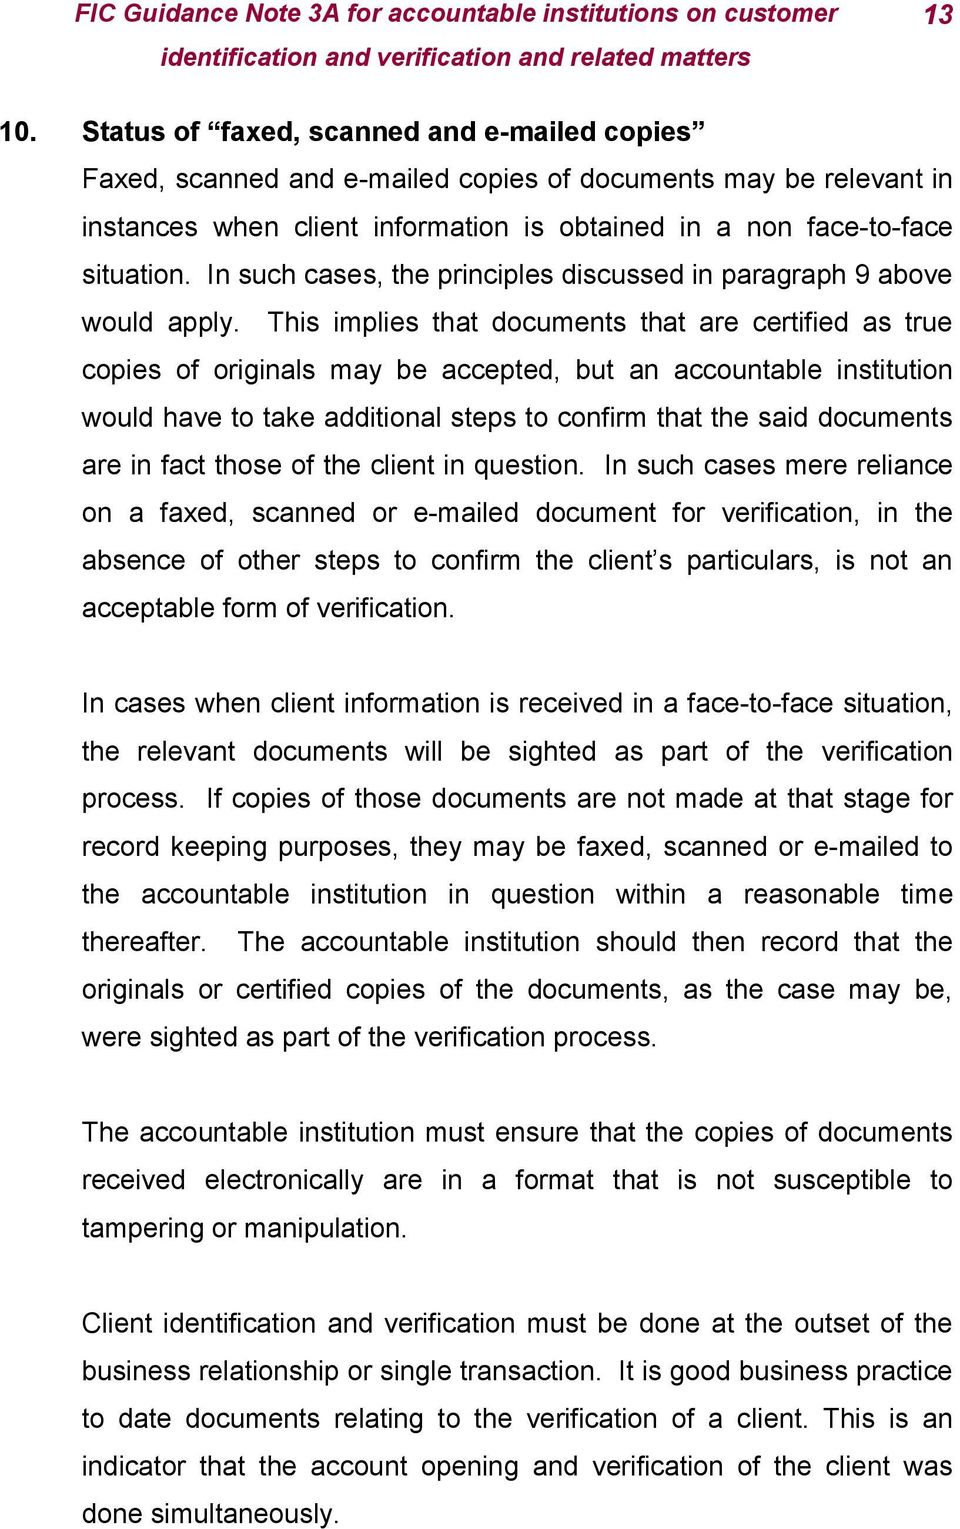 This implies that documents that are certified as true copies of originals may be accepted, but an accountable institution would have to take additional steps to confirm that the said documents are